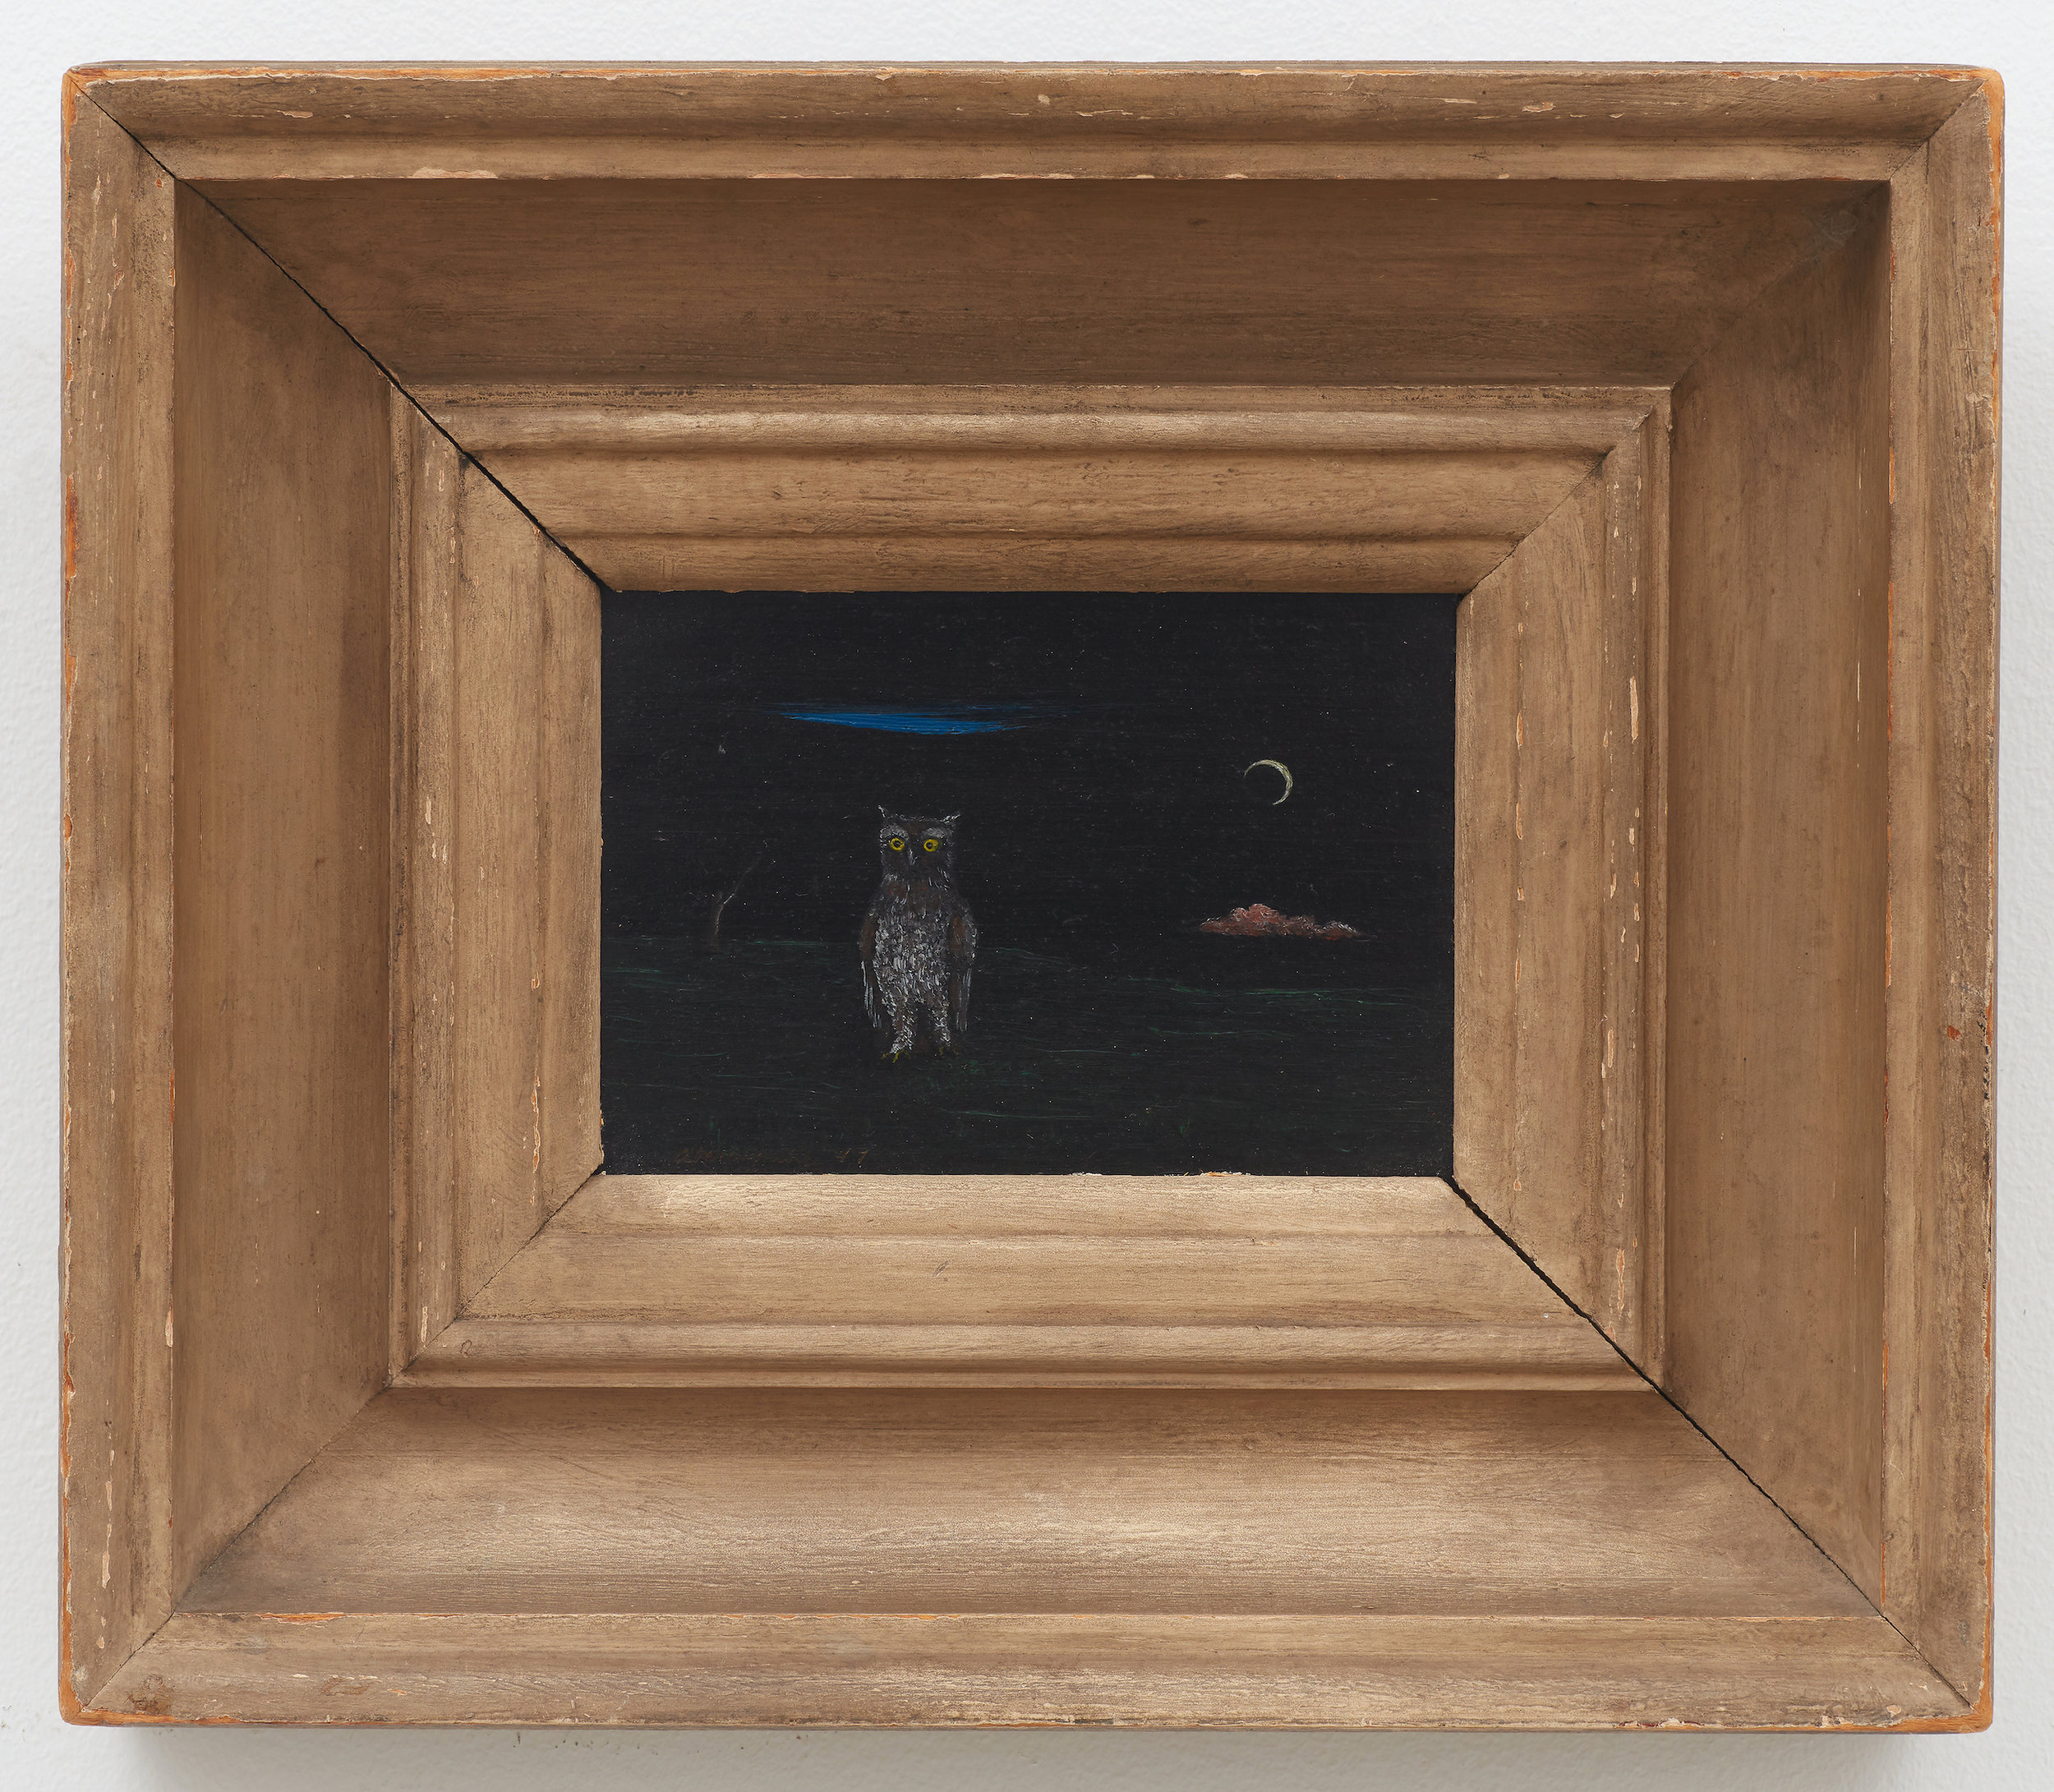 Night Owl , 1947, Oil on masonite, 4 1/2 × 6 1/4 inches (unframed); 10 3/4 × 12 1/2 inches (framed). Collection of Laura and Gary Maurer.